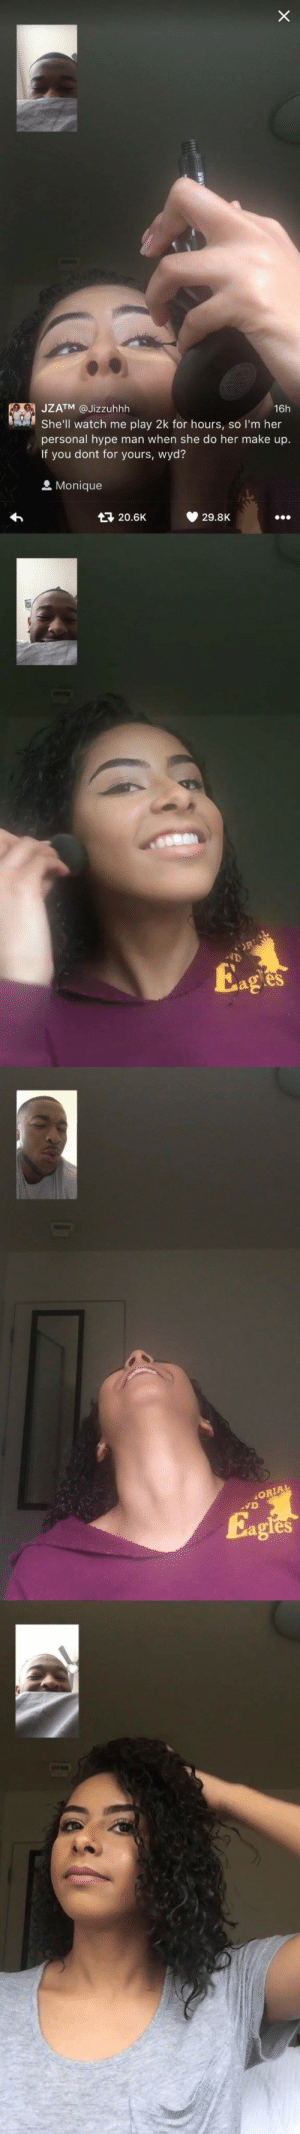 """Cute, Hype, and Hype Man: JZATM @Jizzuhhh  16h  She'll watch me play 2k for hours, so I'm her  personal hype man when she do her make up.  If you dont for yours, wyd?  Monique  20.6K  29.8K   ag e   ORIA  agles iverbz:  nalgonaofcolor:  You can tell he's going """"ohhHhhhhHHH!"""" 😩😭 this is so cute lmao  this is one of most wholesome me posts ive ever seen"""